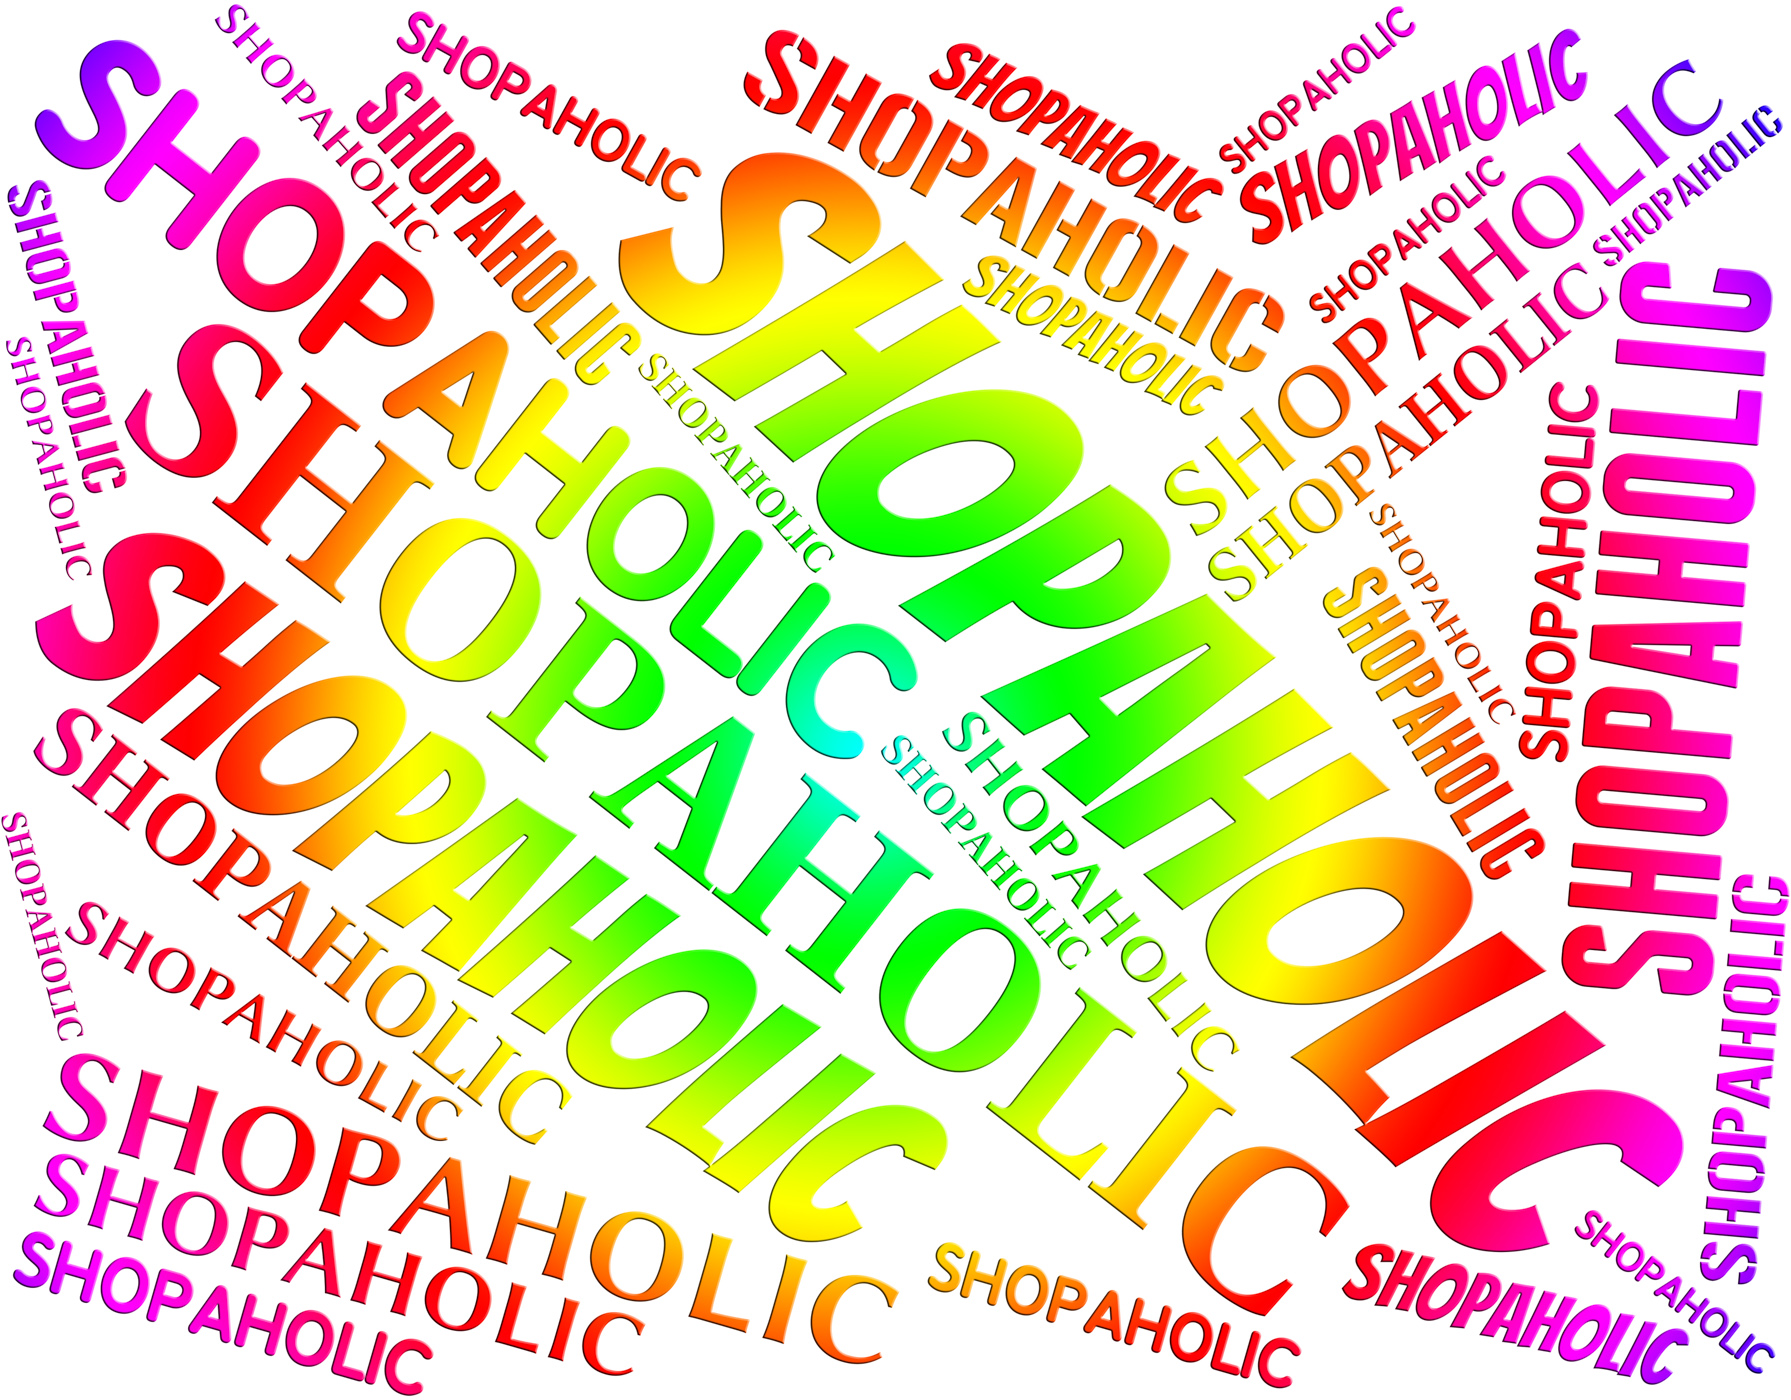 Shopaholic word represents retail sales and addict photo